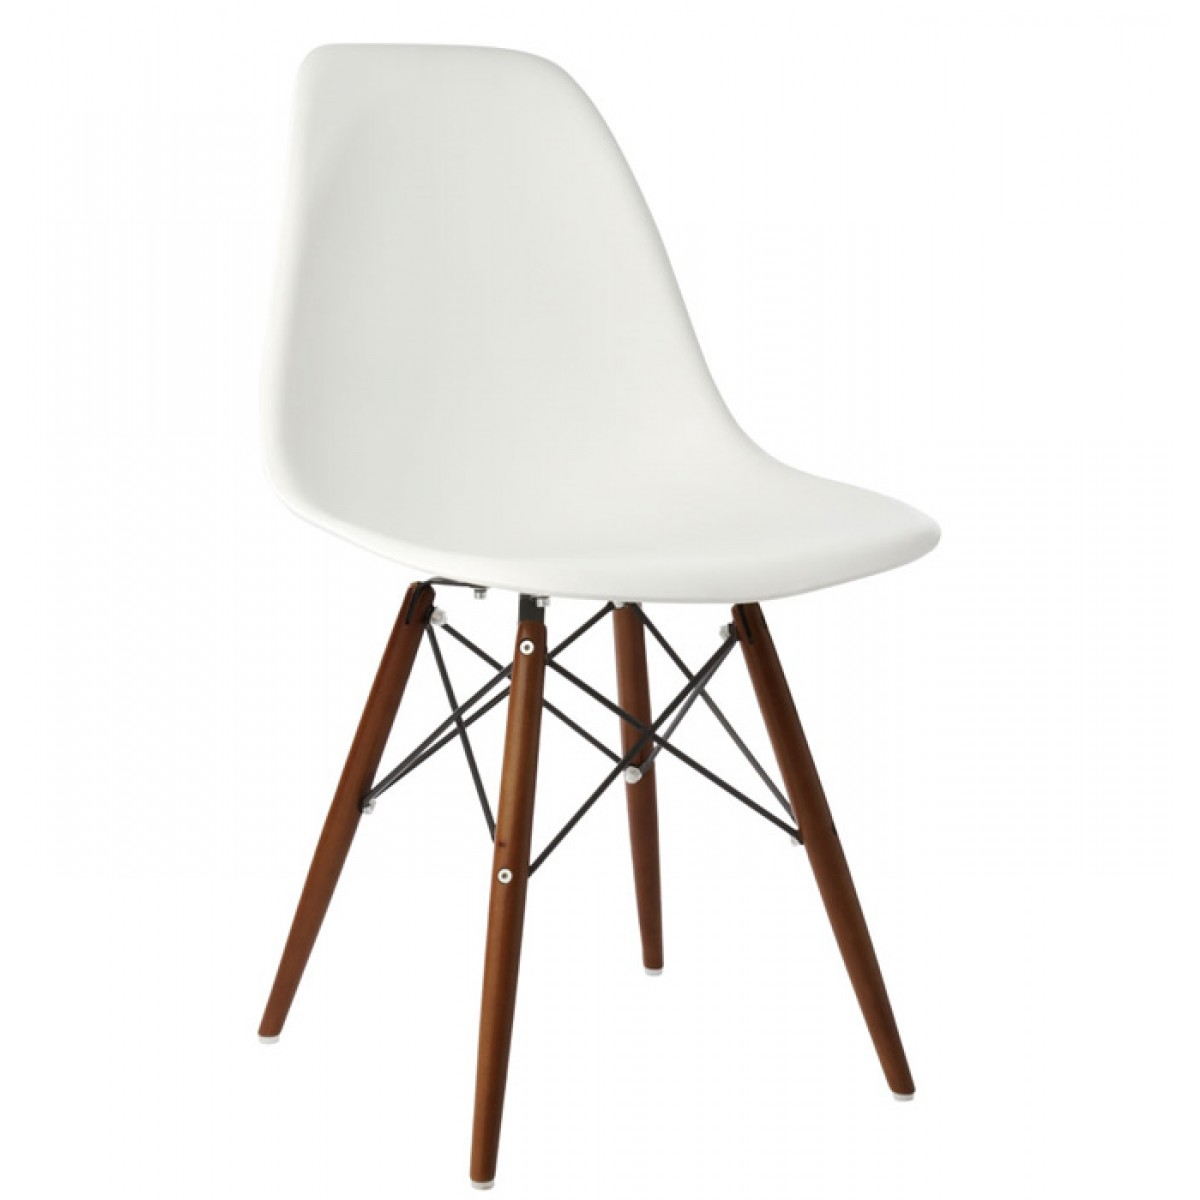 Eames Dsw Set Of 2 Dsw Molded White Plastic Dining Shell Chair With Dark Walnut Wood Eiffel Legs